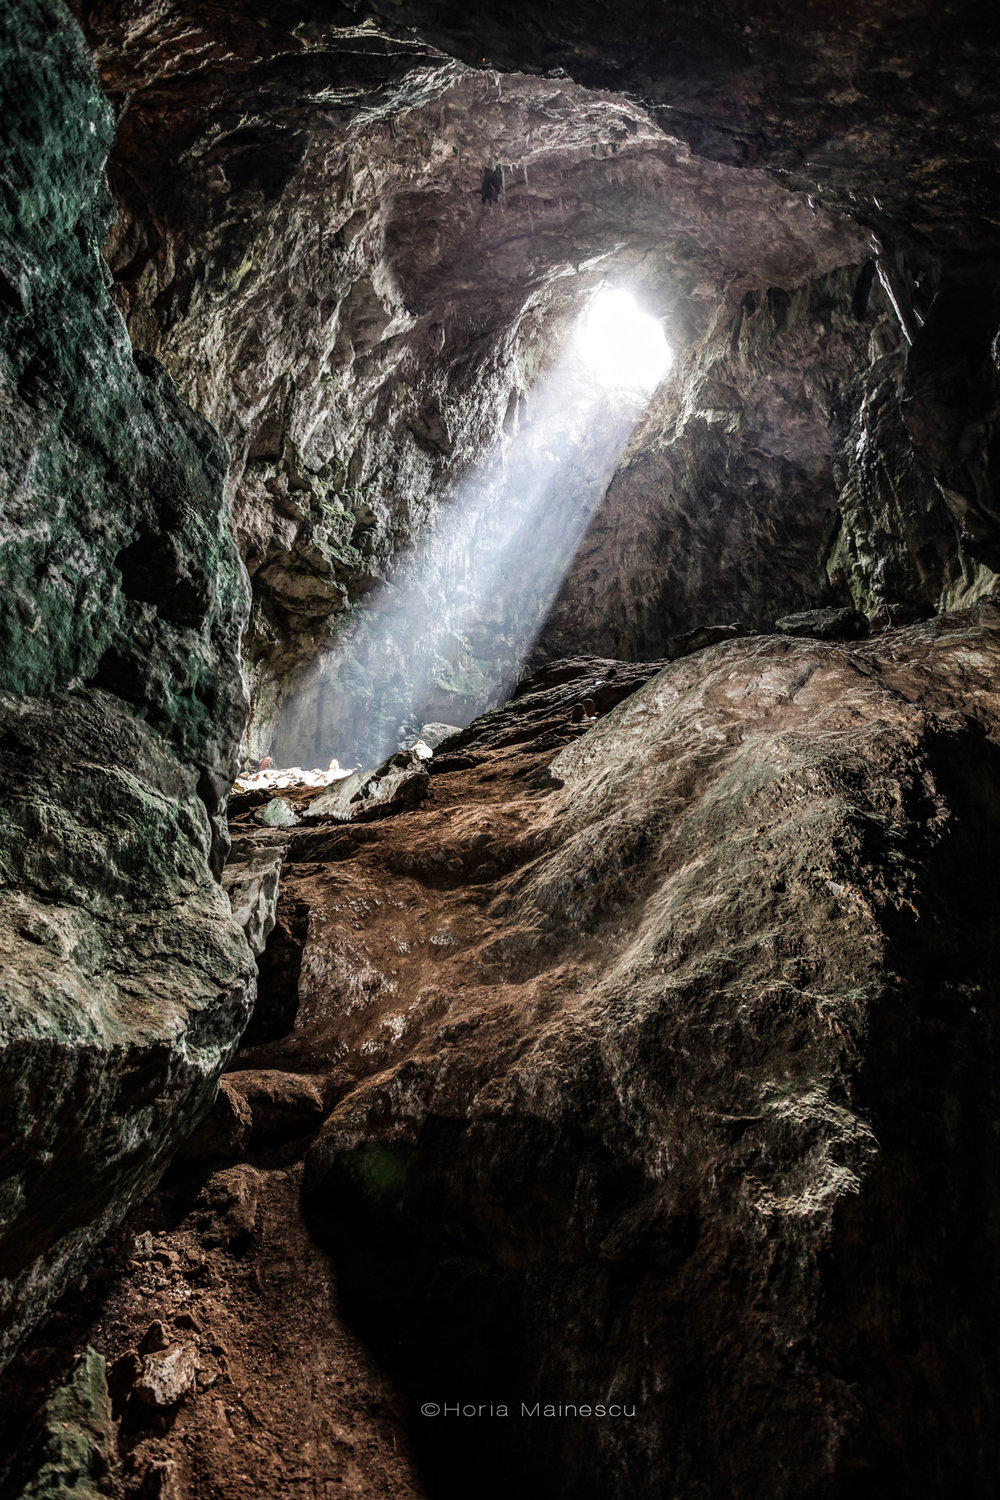 The cave is illuminated by natural light entering it through a hole located on the upper part.